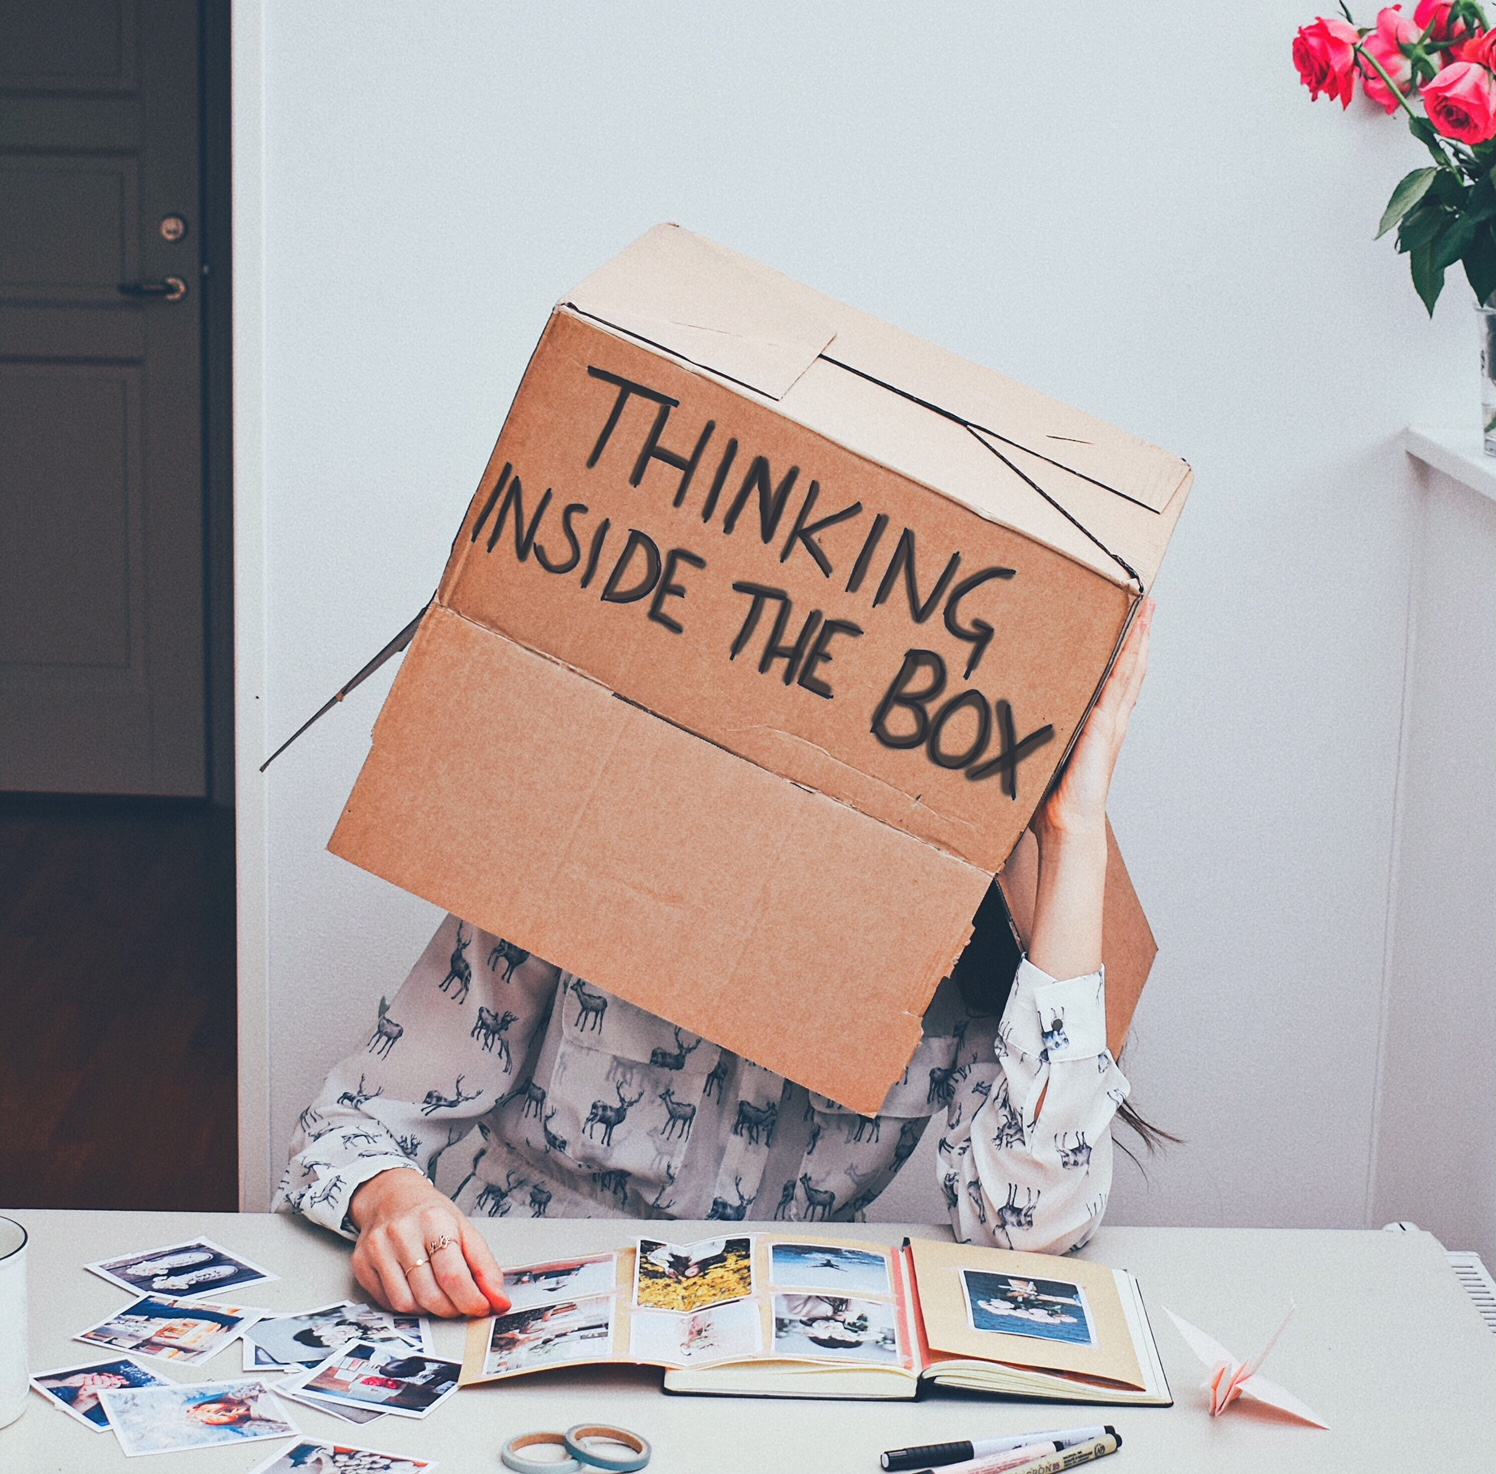 10 ways to boost your creativity- For when you feel like you're thinkng inside the box